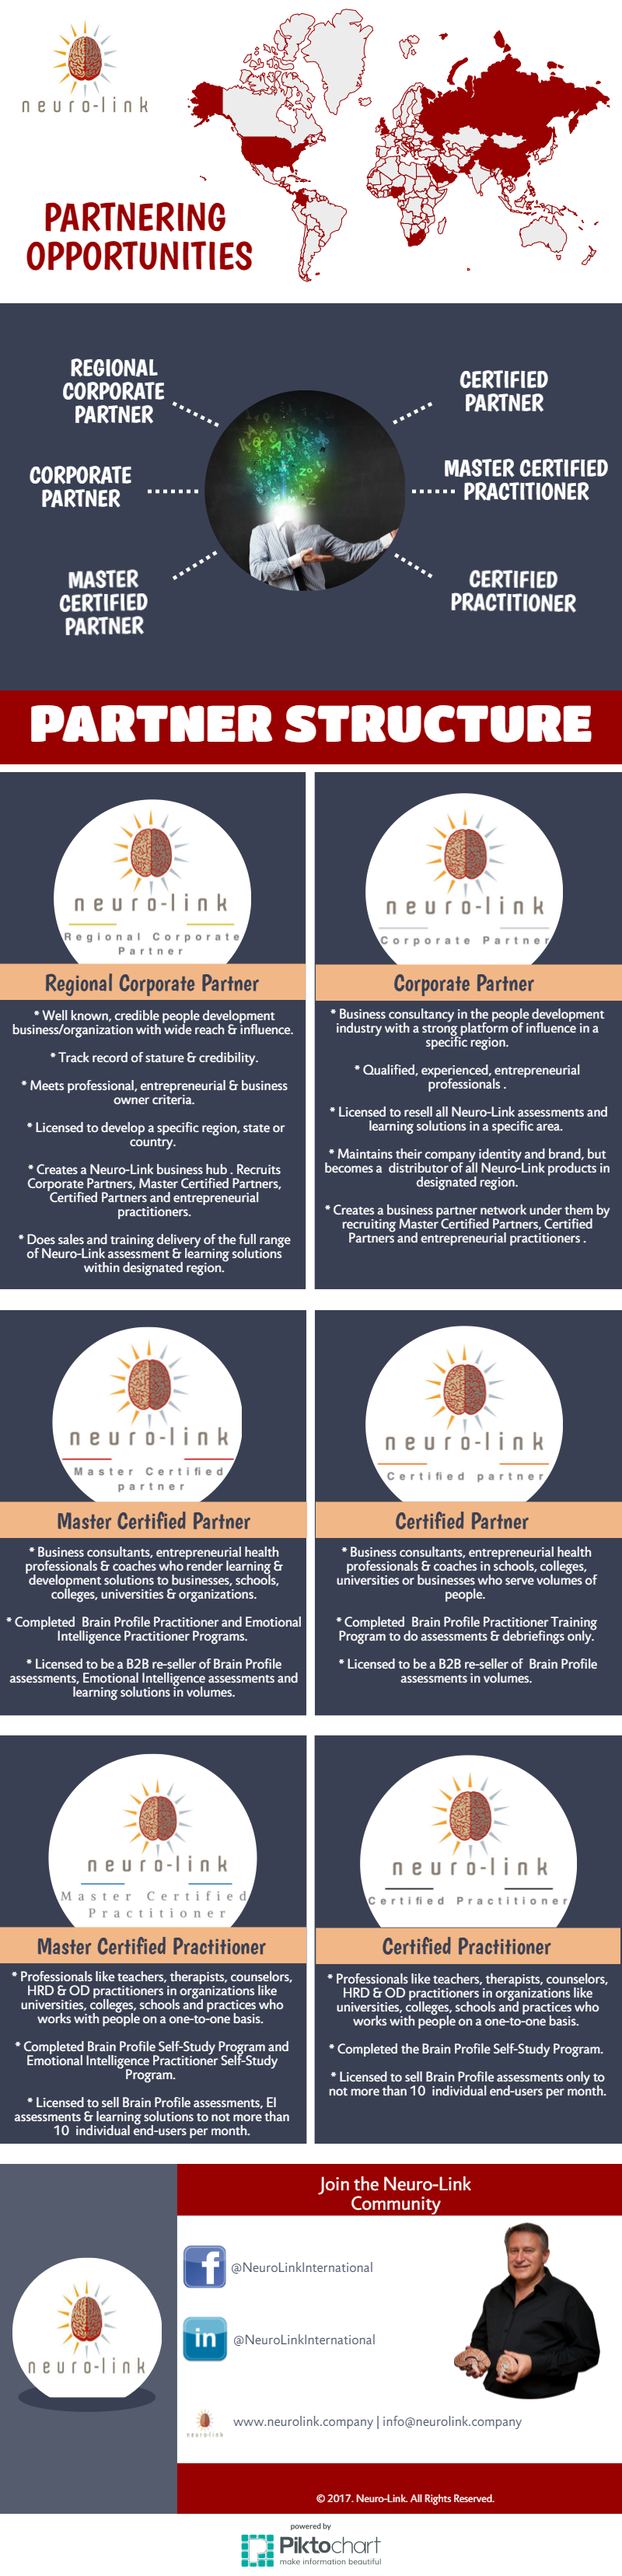 Infographic showing Neuro-Link's partnering structure